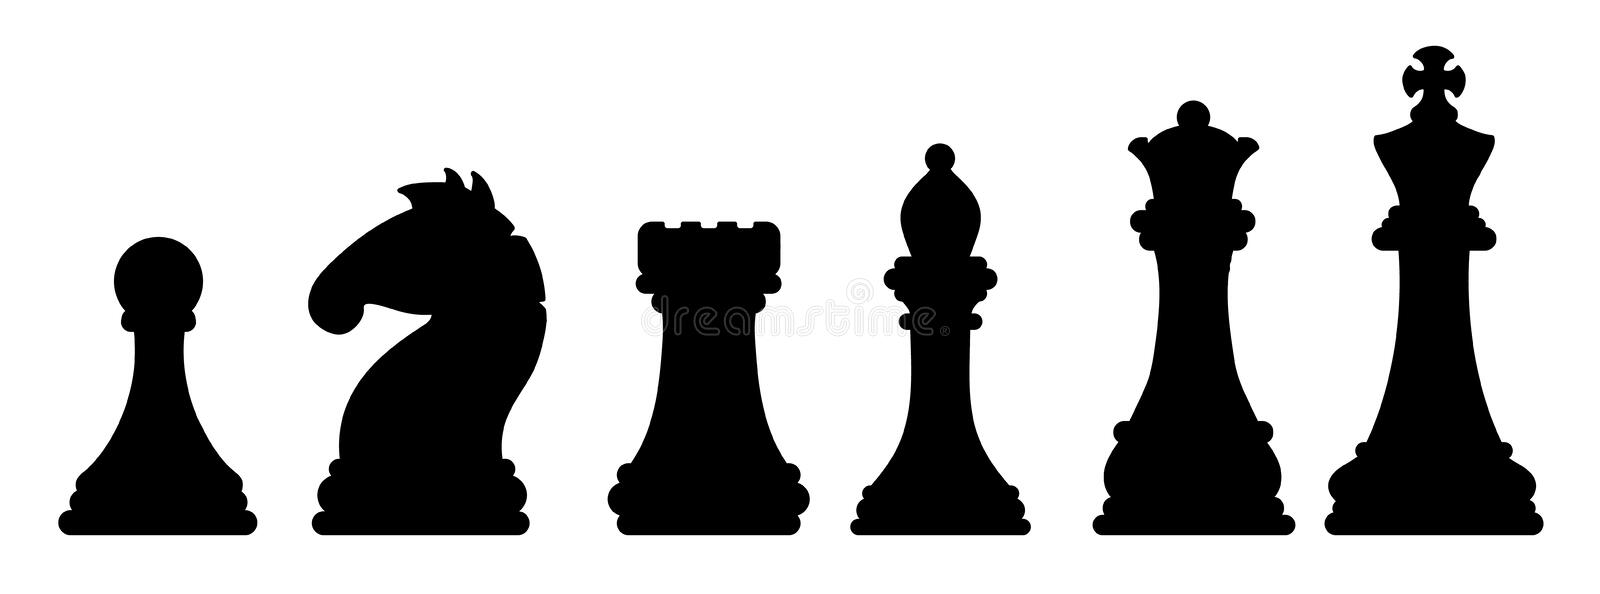 Chess pieces black silhouettes. Game concept image royalty free illustration